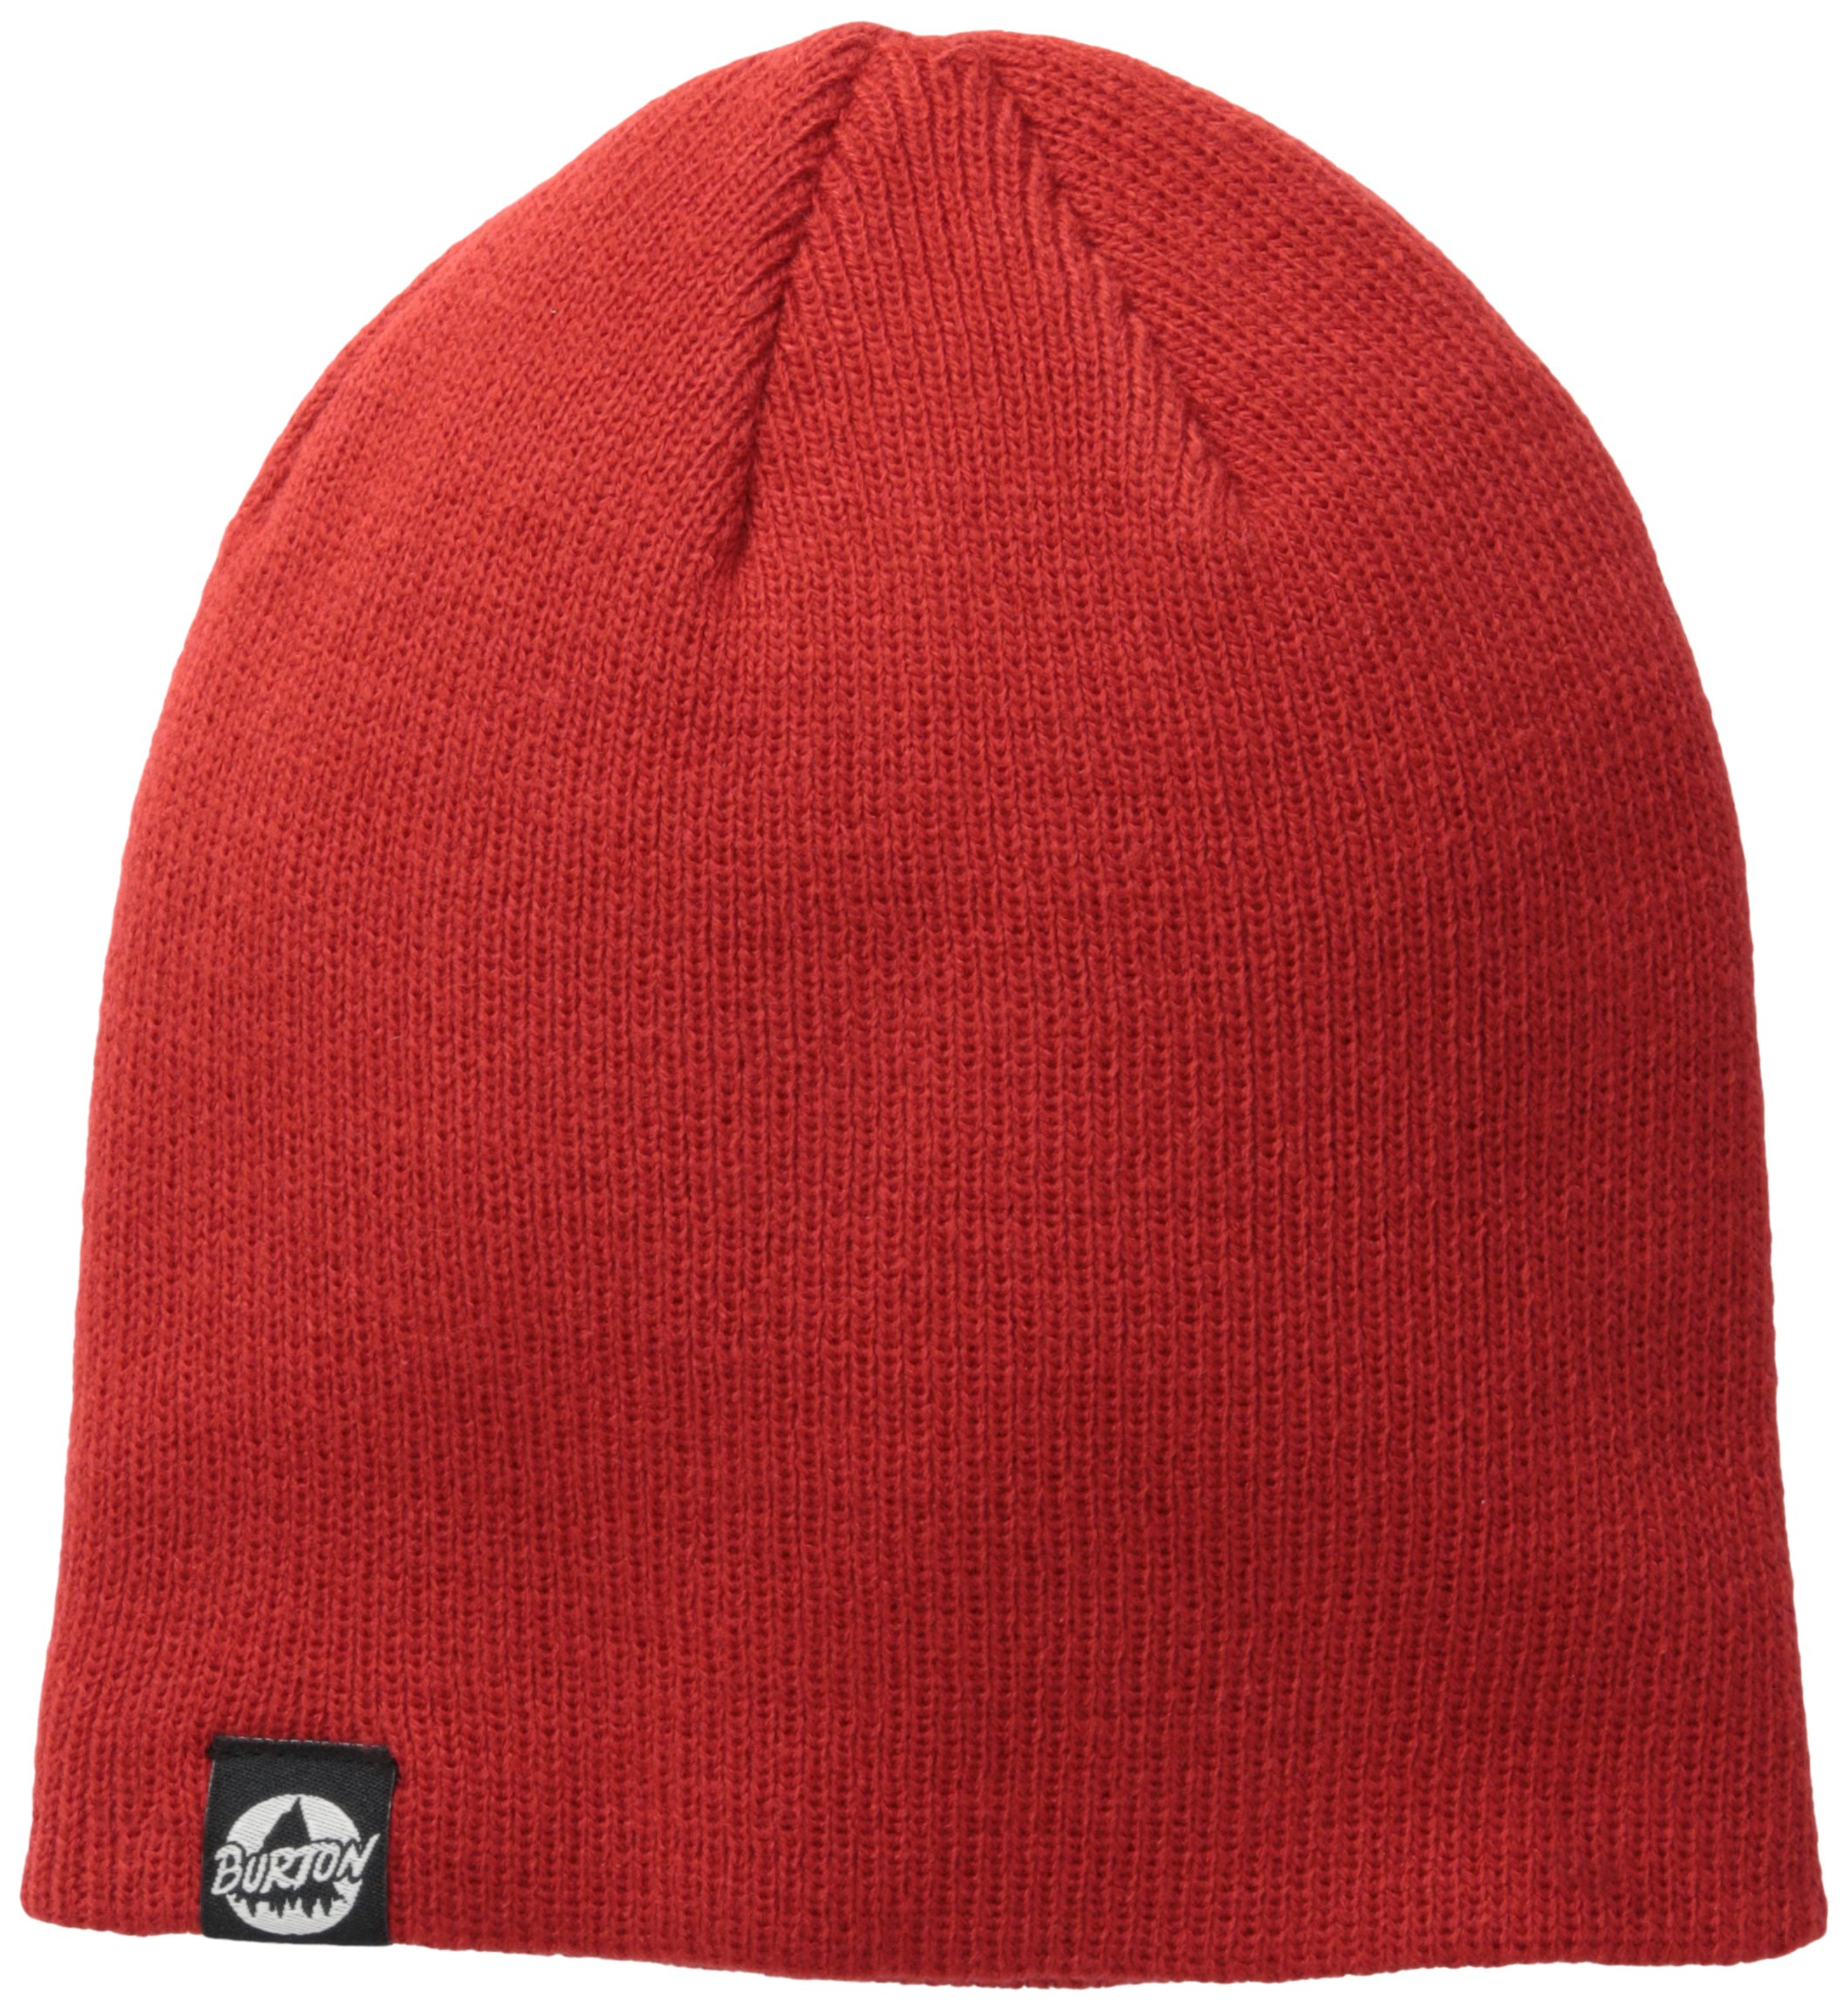 Burton Boys All Day Long Beanie, Fang, One Size